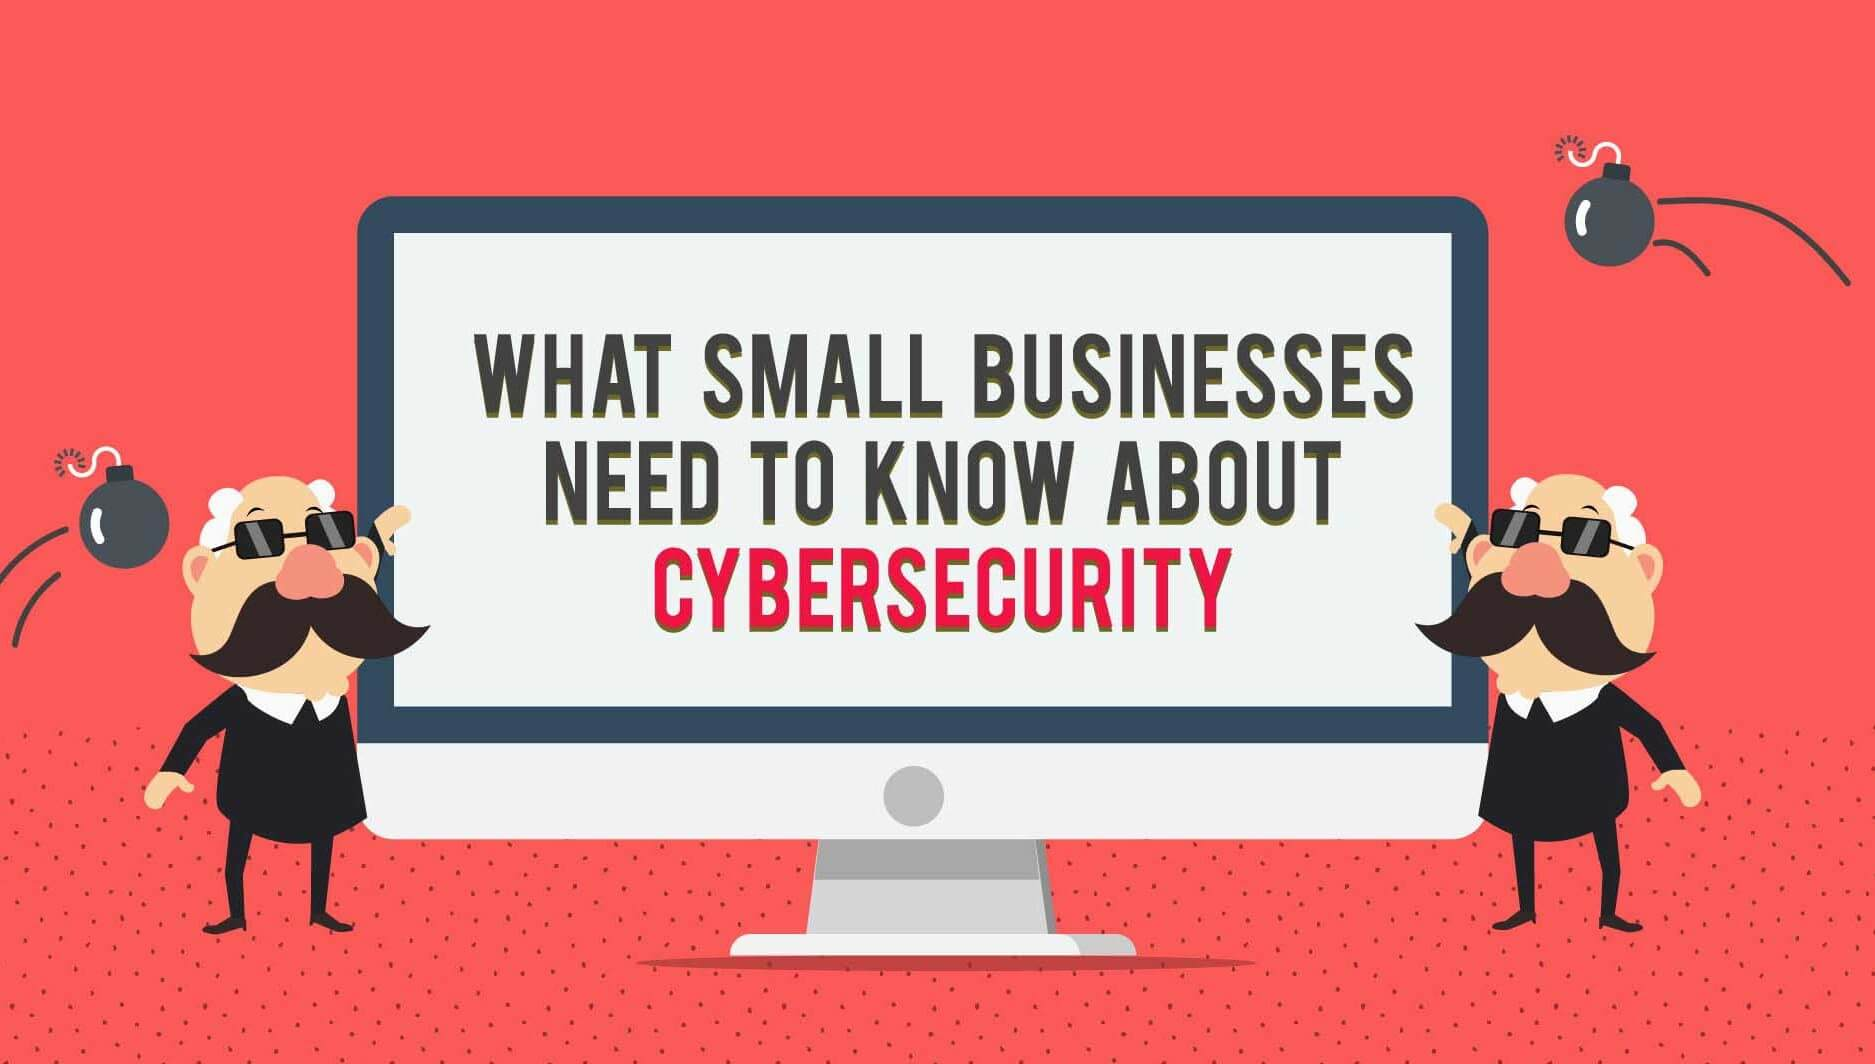 Header image for infographic about cybersecurity for small businesses